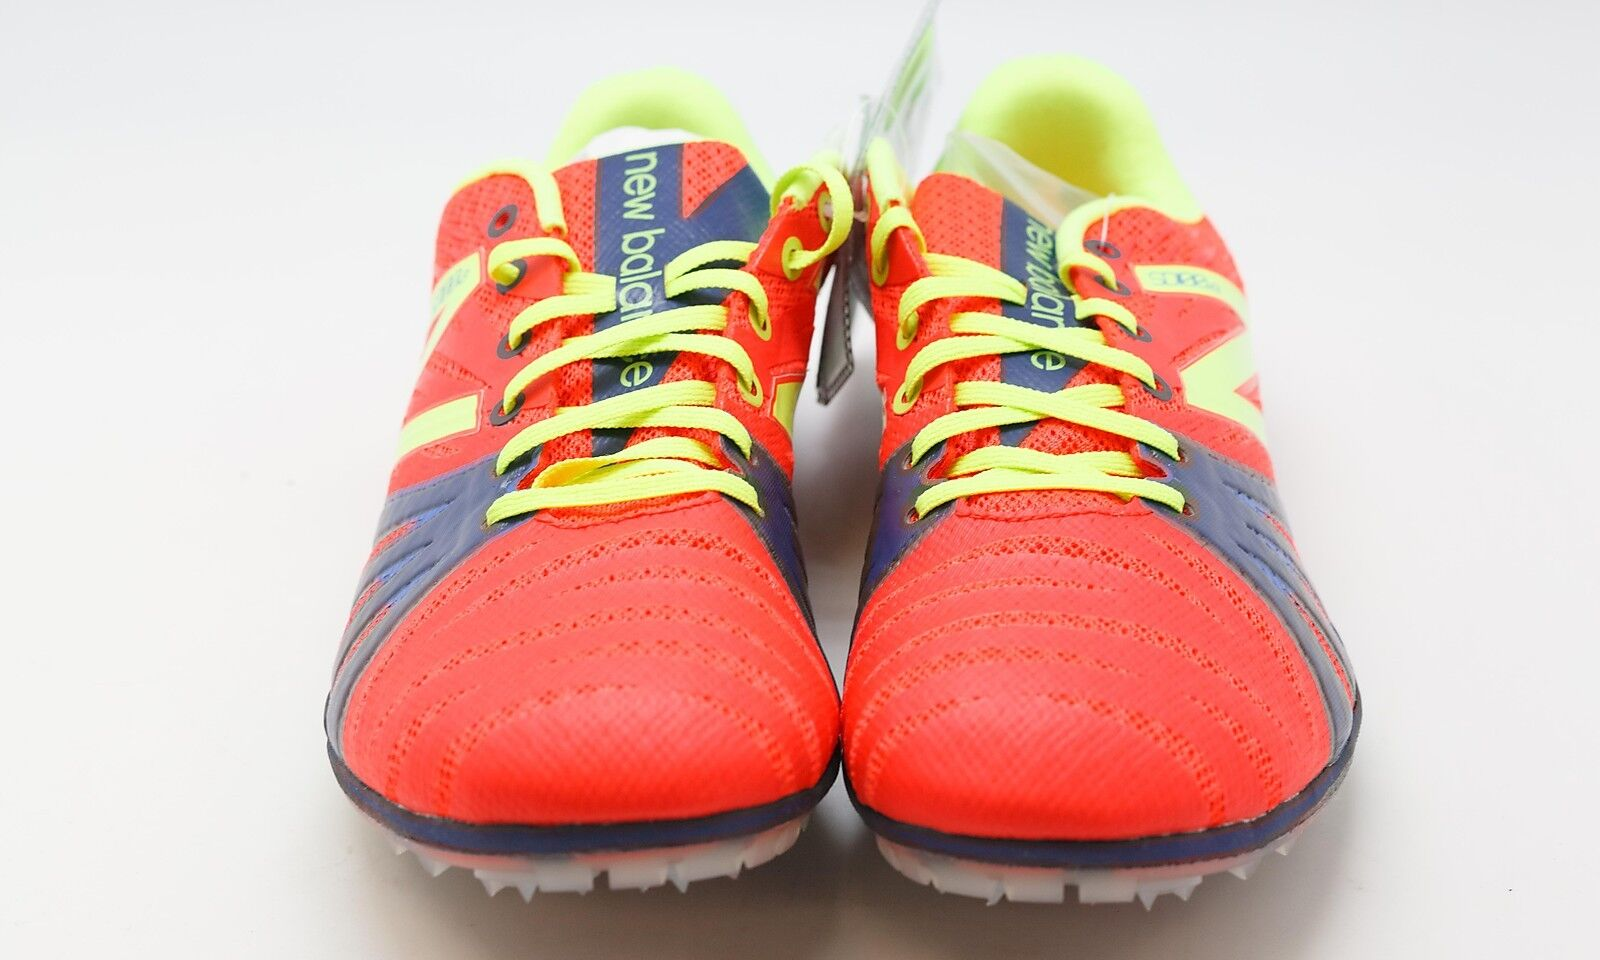 PredOTYPE NEW BALANCE SD100v3 SIZE 9 TRACK & FIELD SPRINTING SILENT HUNTER TC6